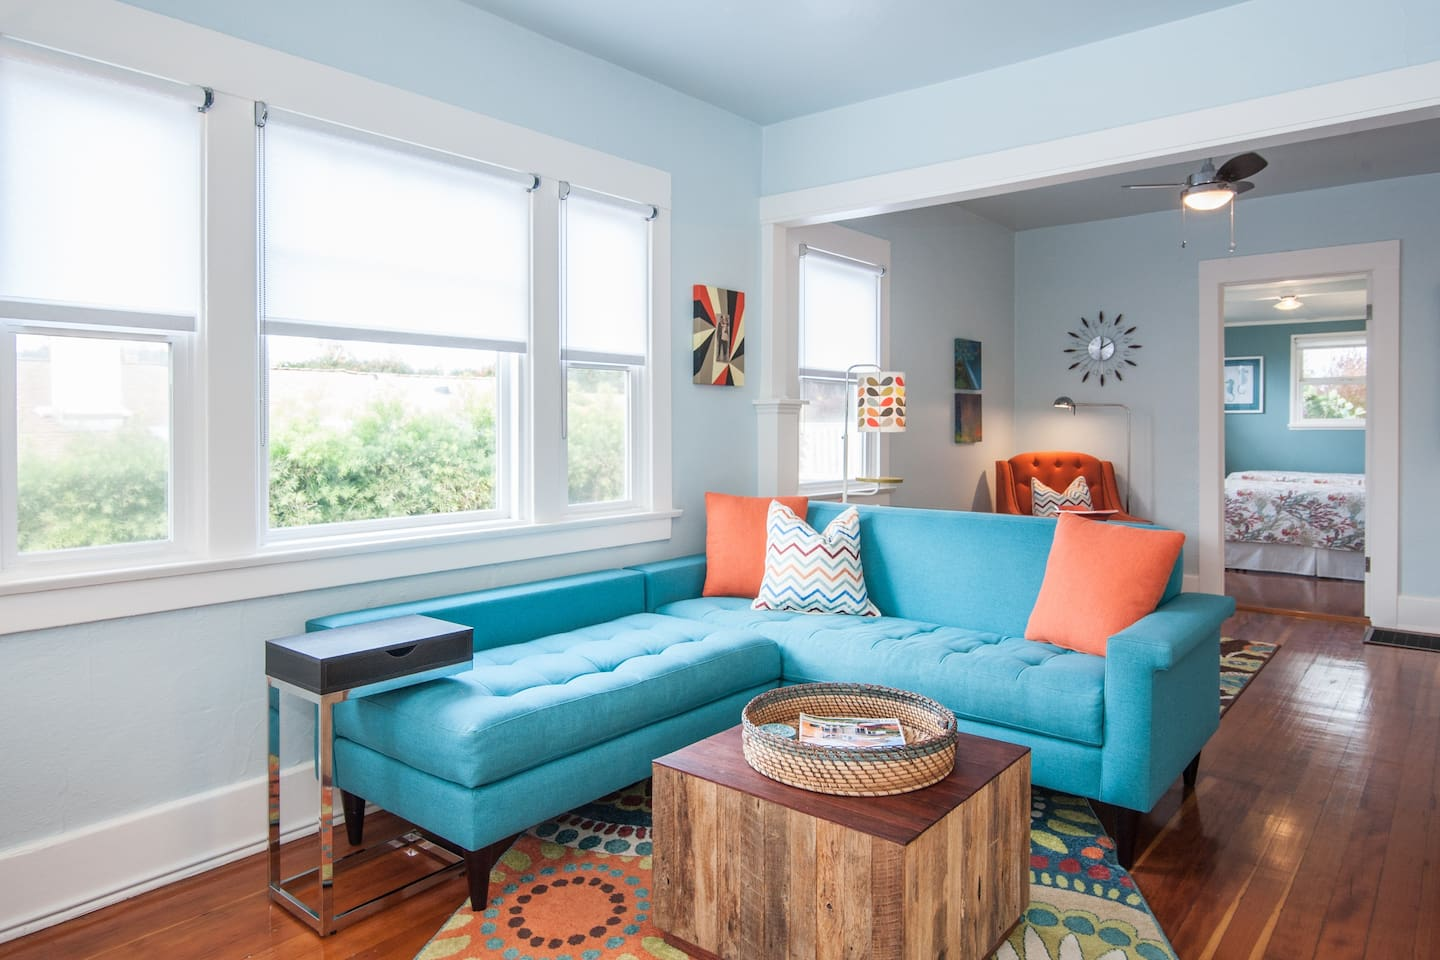 Living room offers garden and ocean views, seating for 6, and space for working remotely.